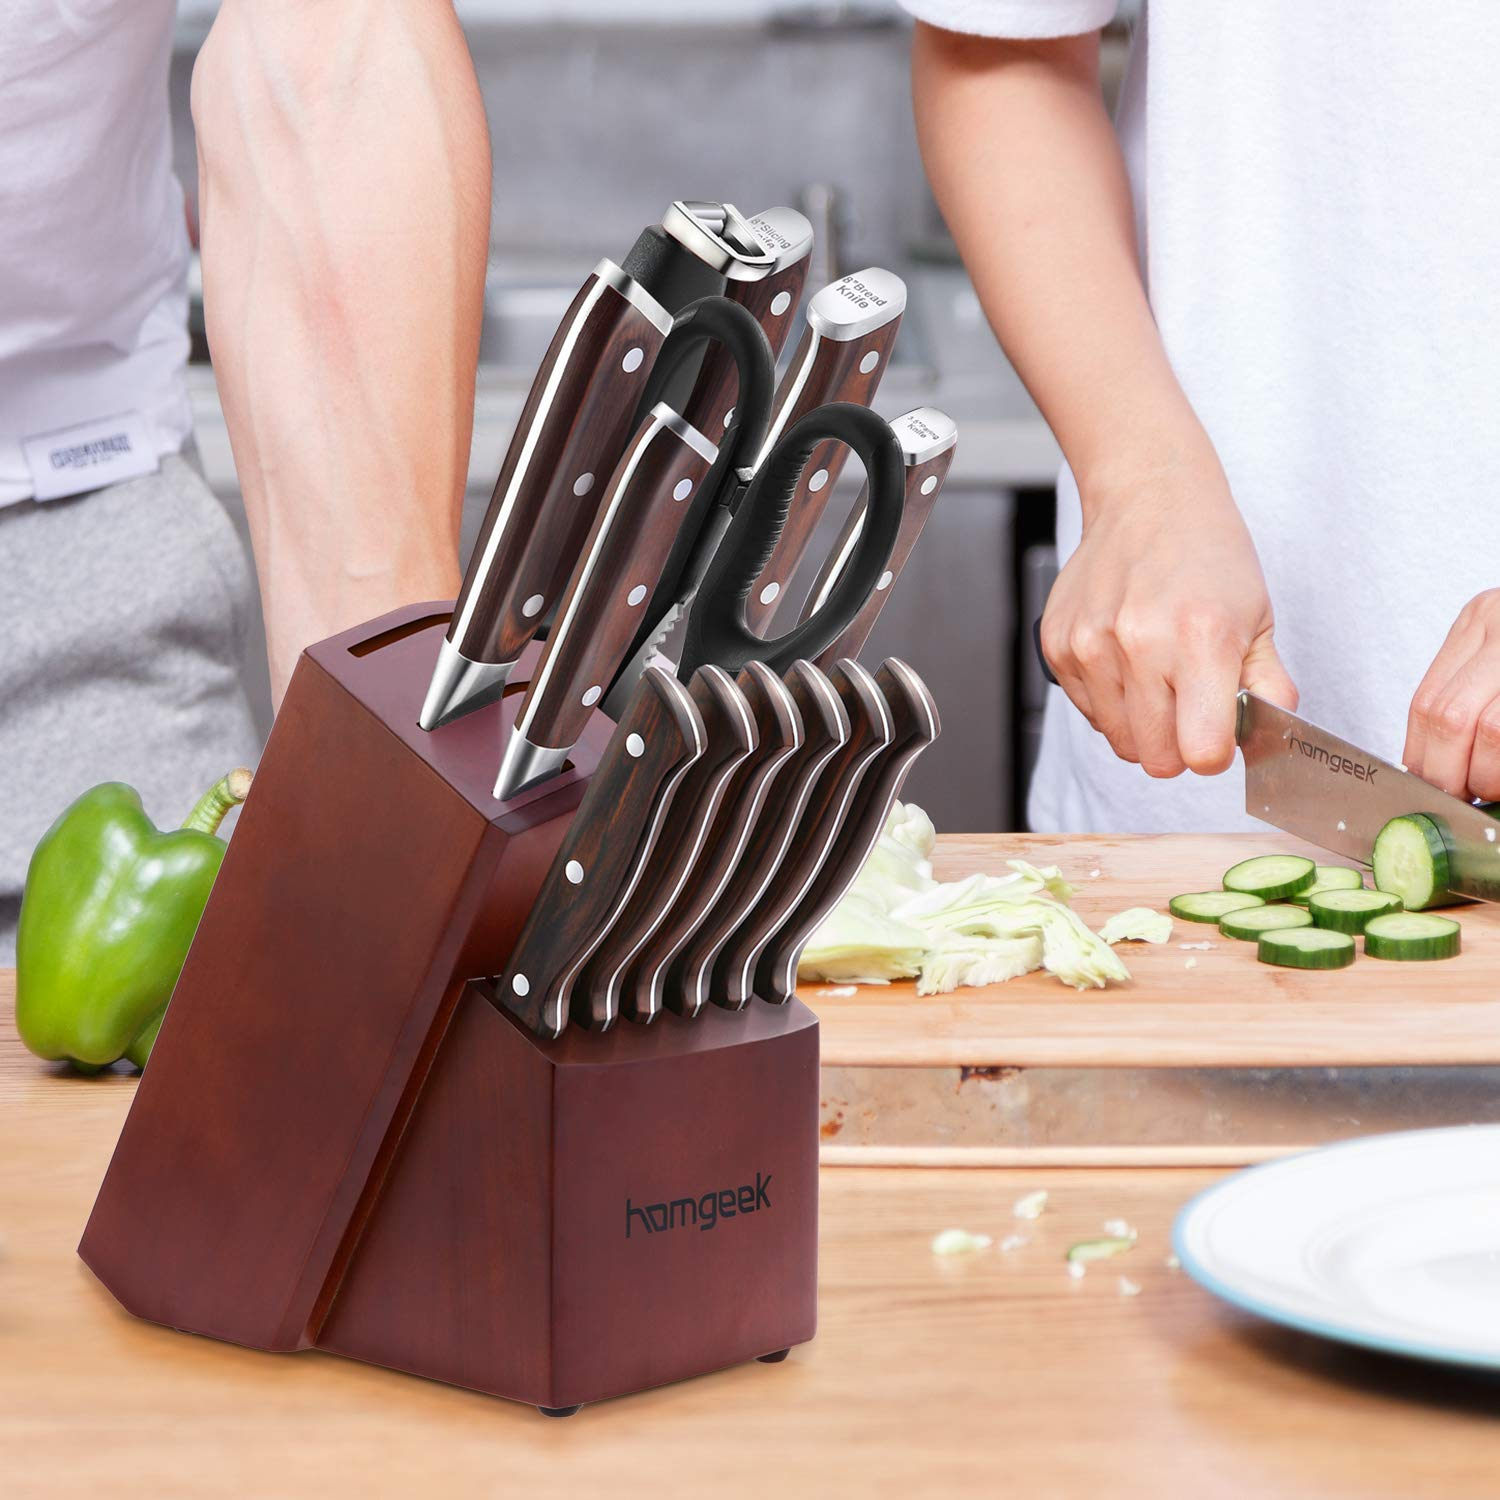 Chef Knife Set,15 Piece Knife set With Wooden Block,Wood Handle and German 1.4116 Stainless Steel,Full-Tang by homgeek (Image #7)